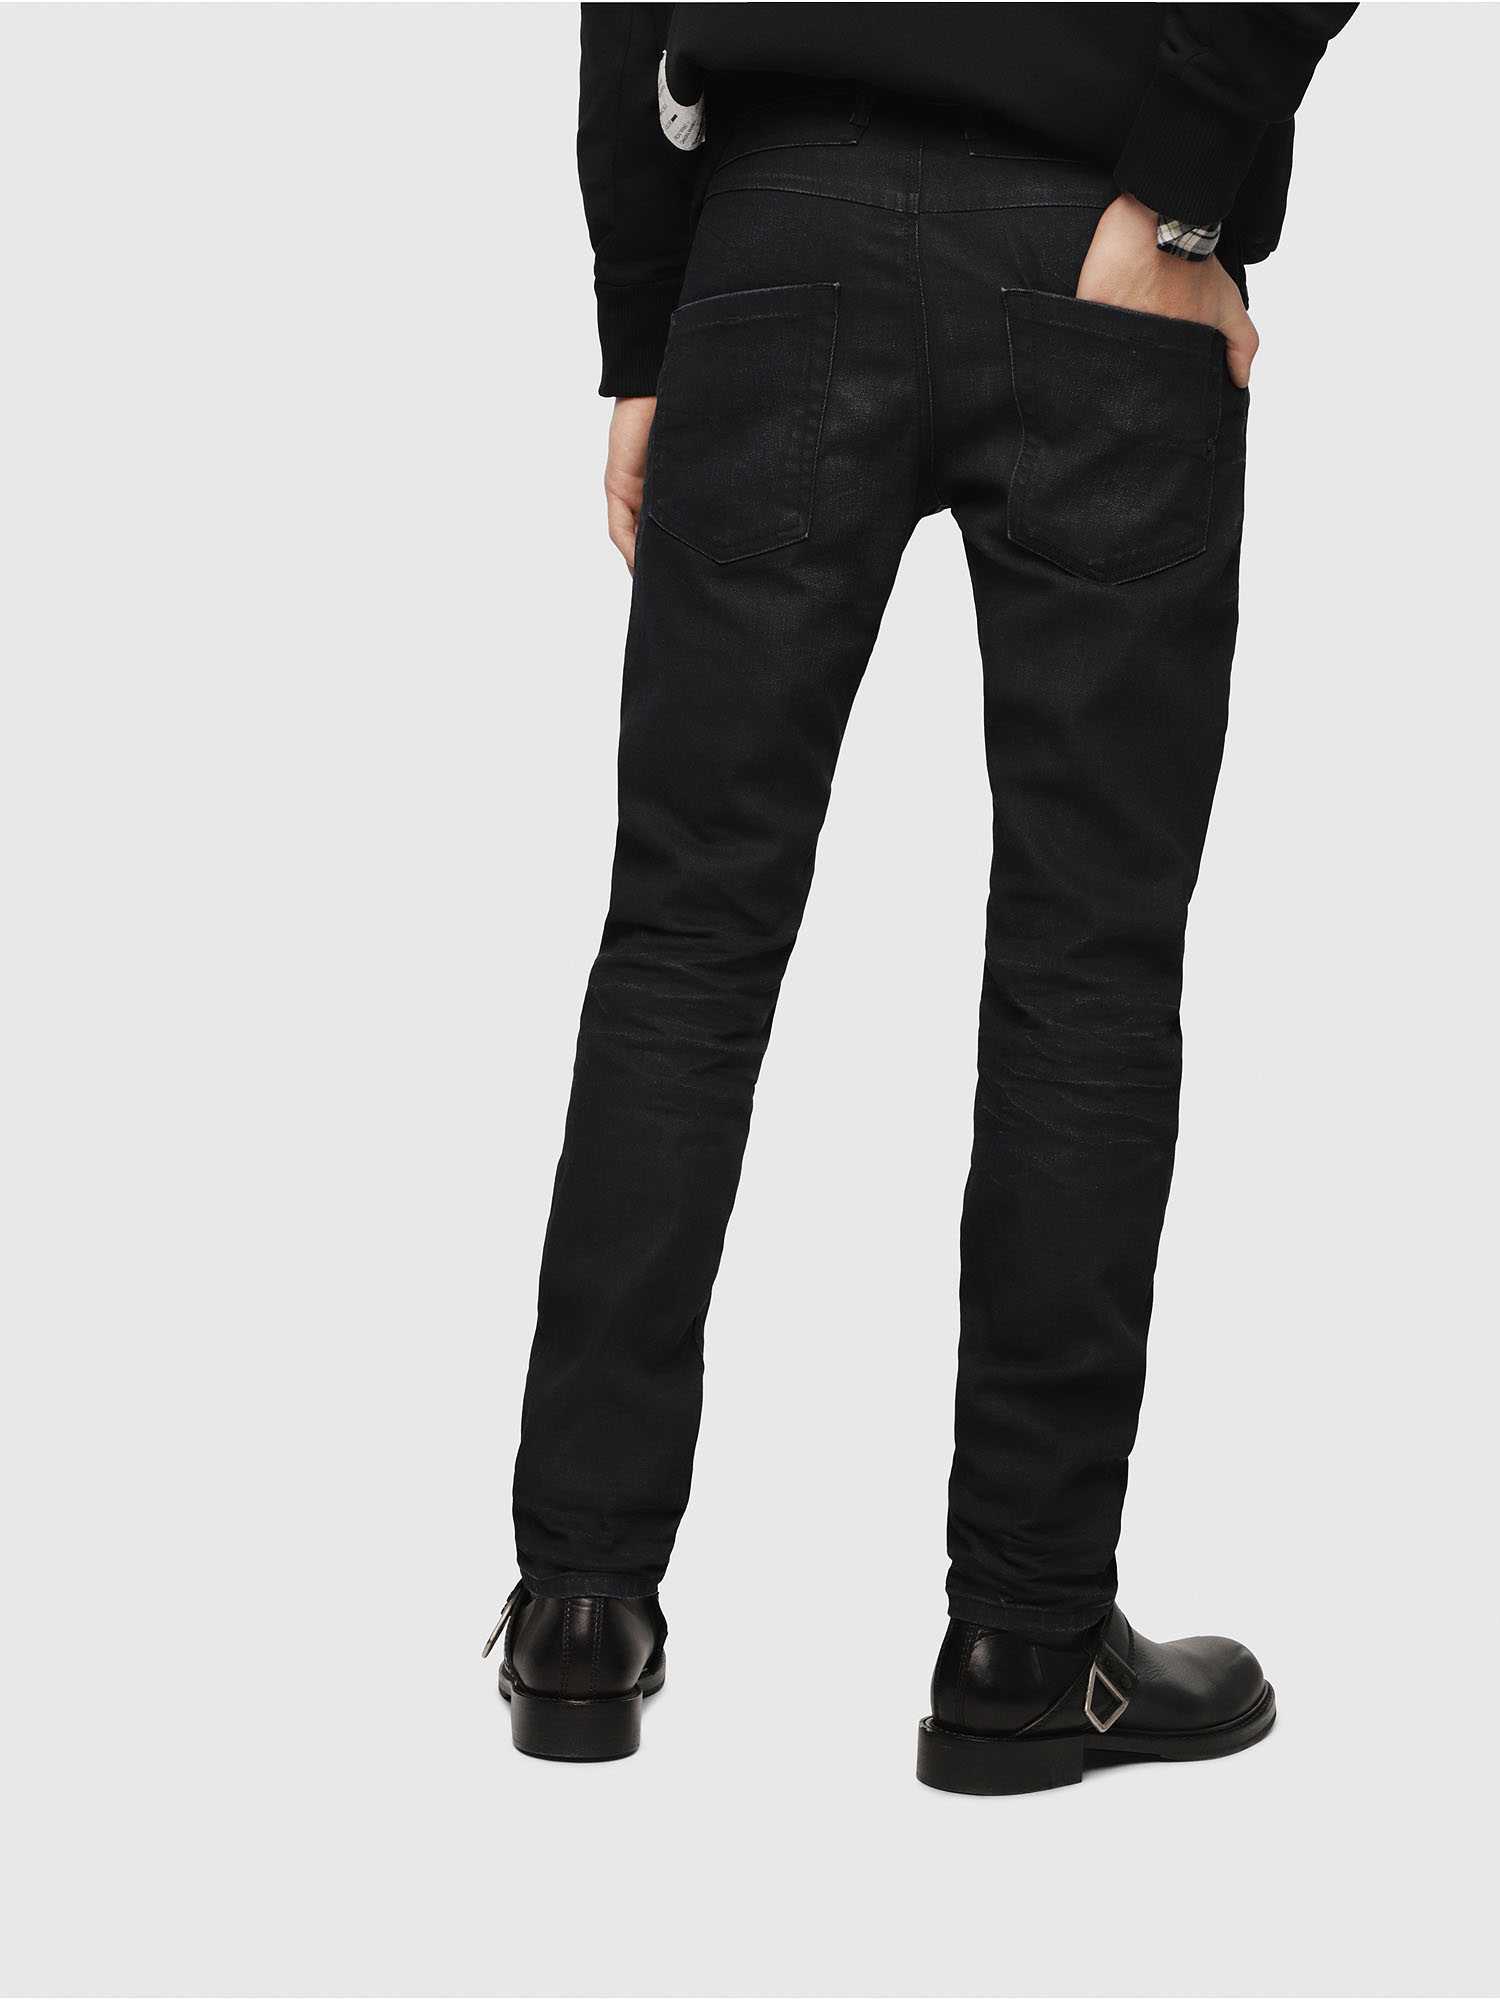 Diesel - Belther 087AU,  - Jeans - Image 2